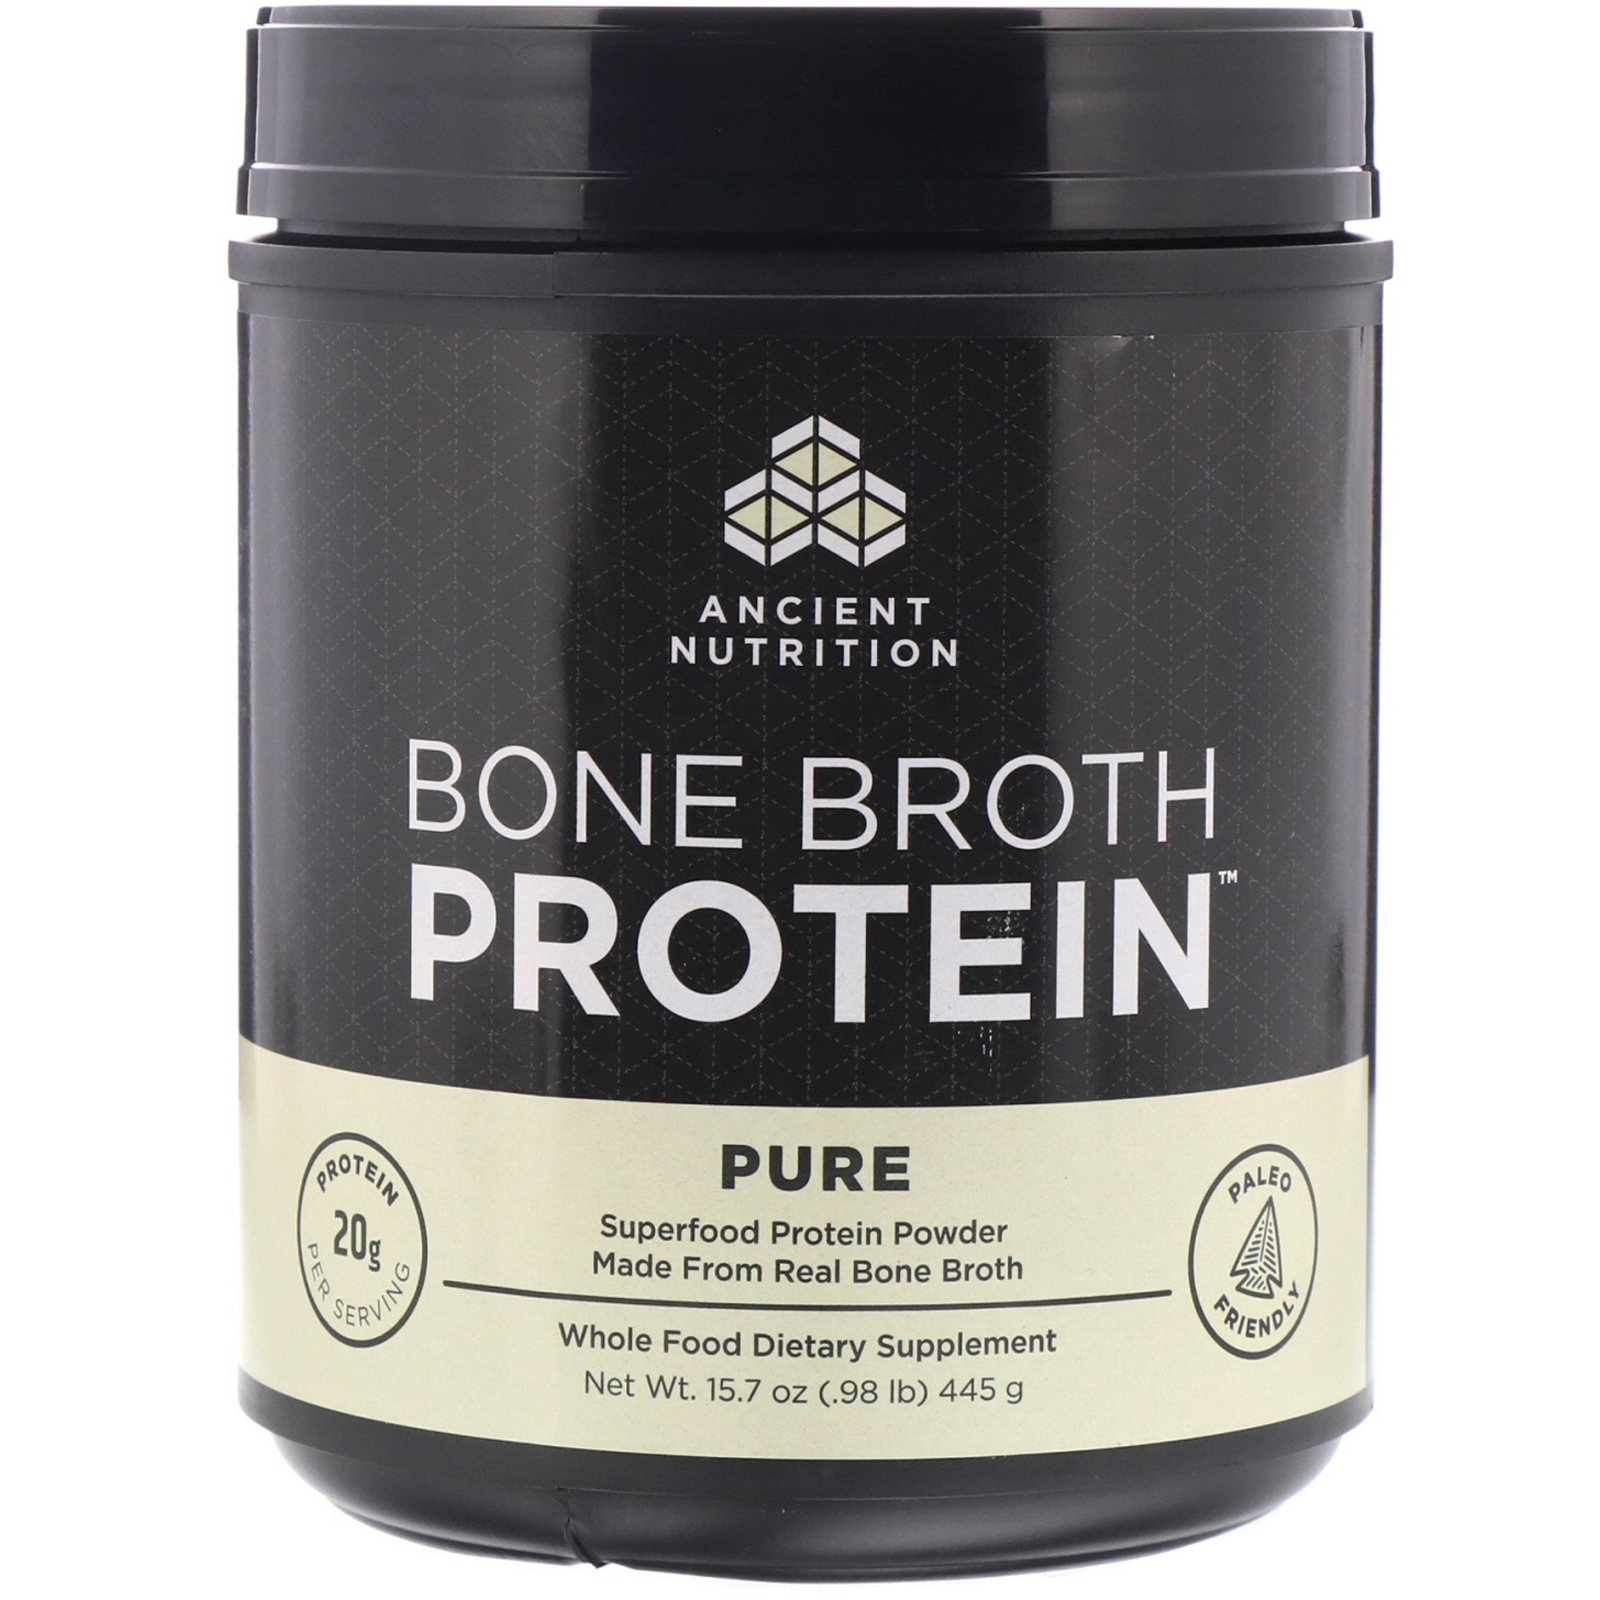 4a92693f78 Dr. Axe / Ancient Nutrition, Bone Broth Protein, Pure, 15.7 oz (445 ...